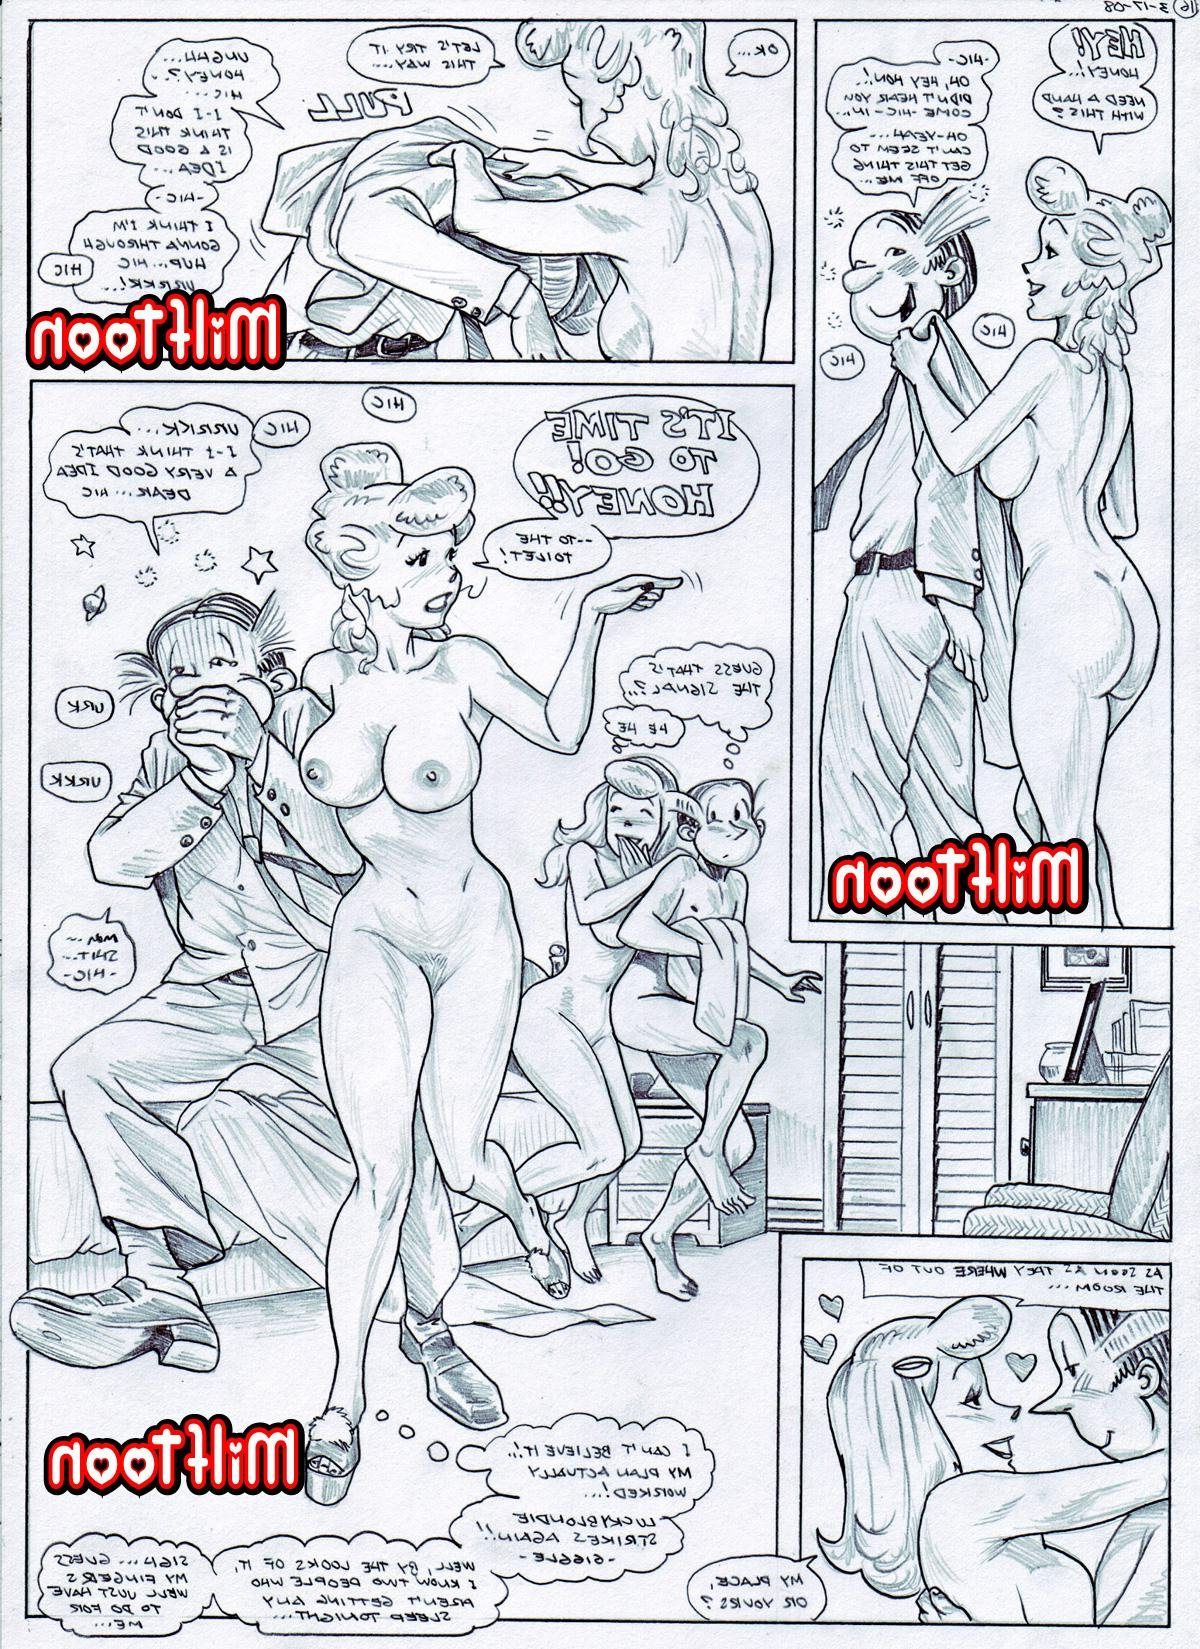 Blondie Cartoon Sex